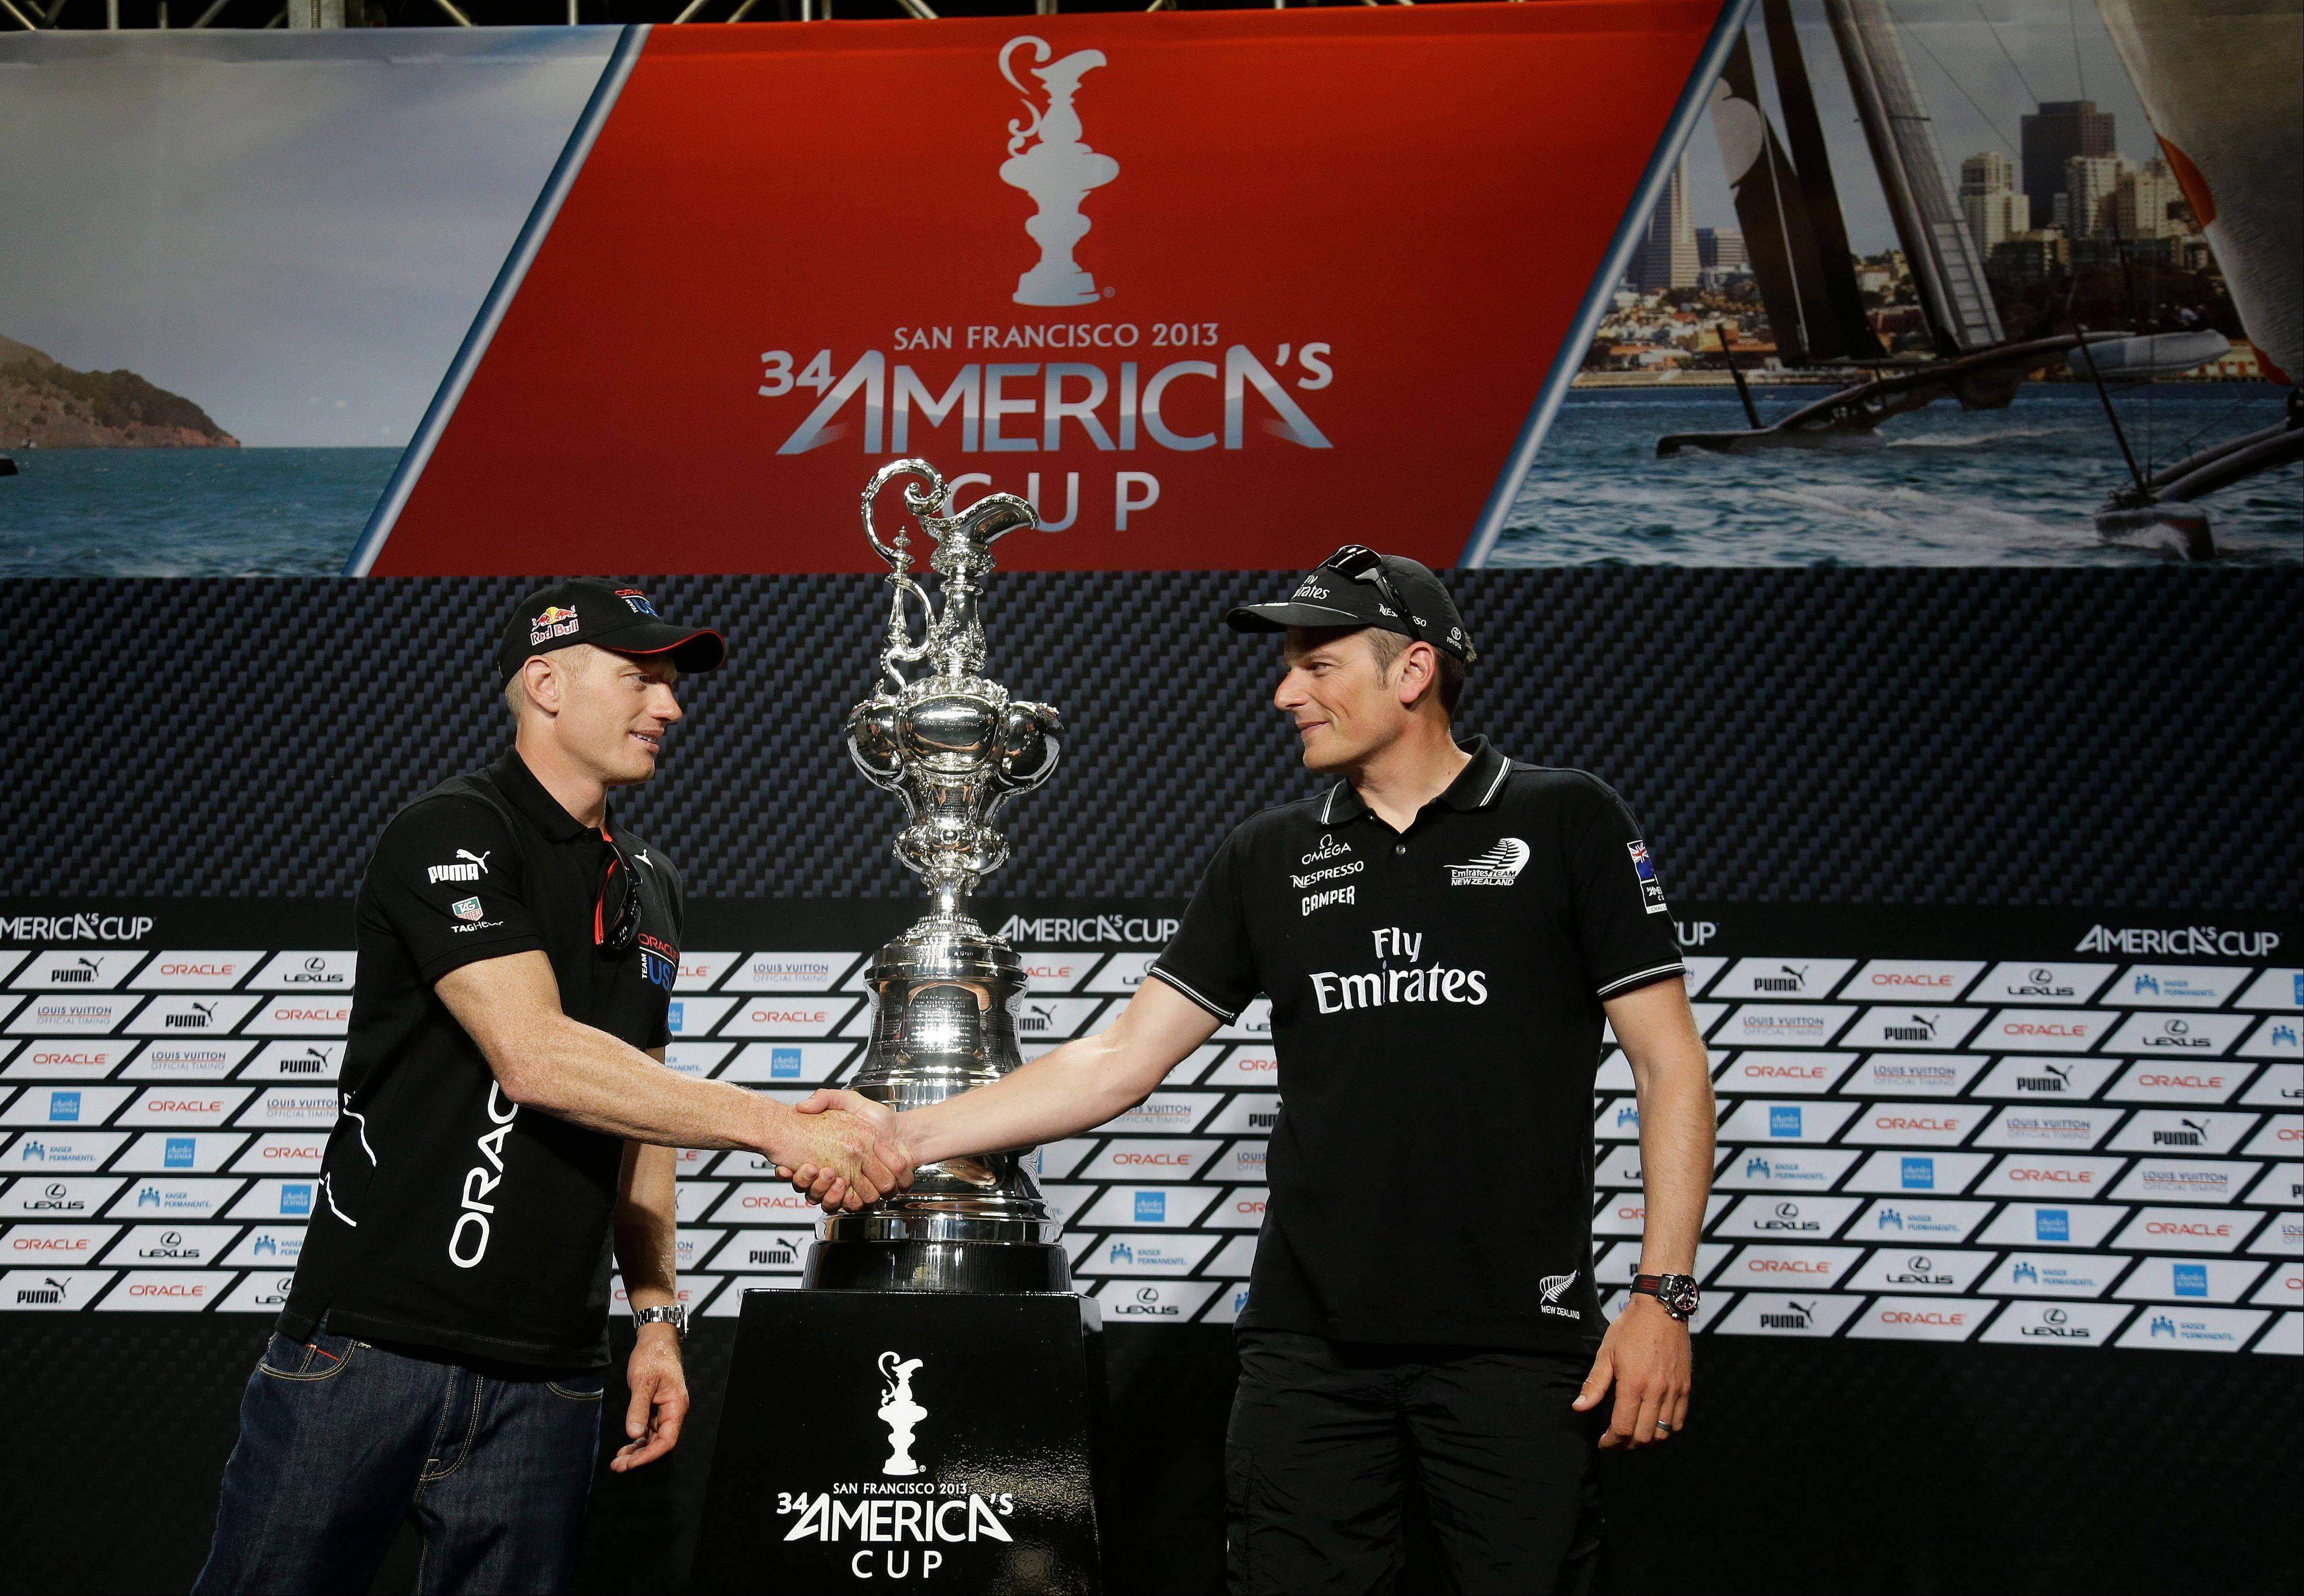 Jimmy Spithill, left, skipper of Oracle Team USA and Dean Barker, right, skipper of Emirates Team New Zealand shake hands while posing with the America's Cup trophy following a news conference Thursday, Sept. 5, 2013, in San Francisco. The first races between Oracle Team USA and Emirates Team New Zealand are on Saturday.